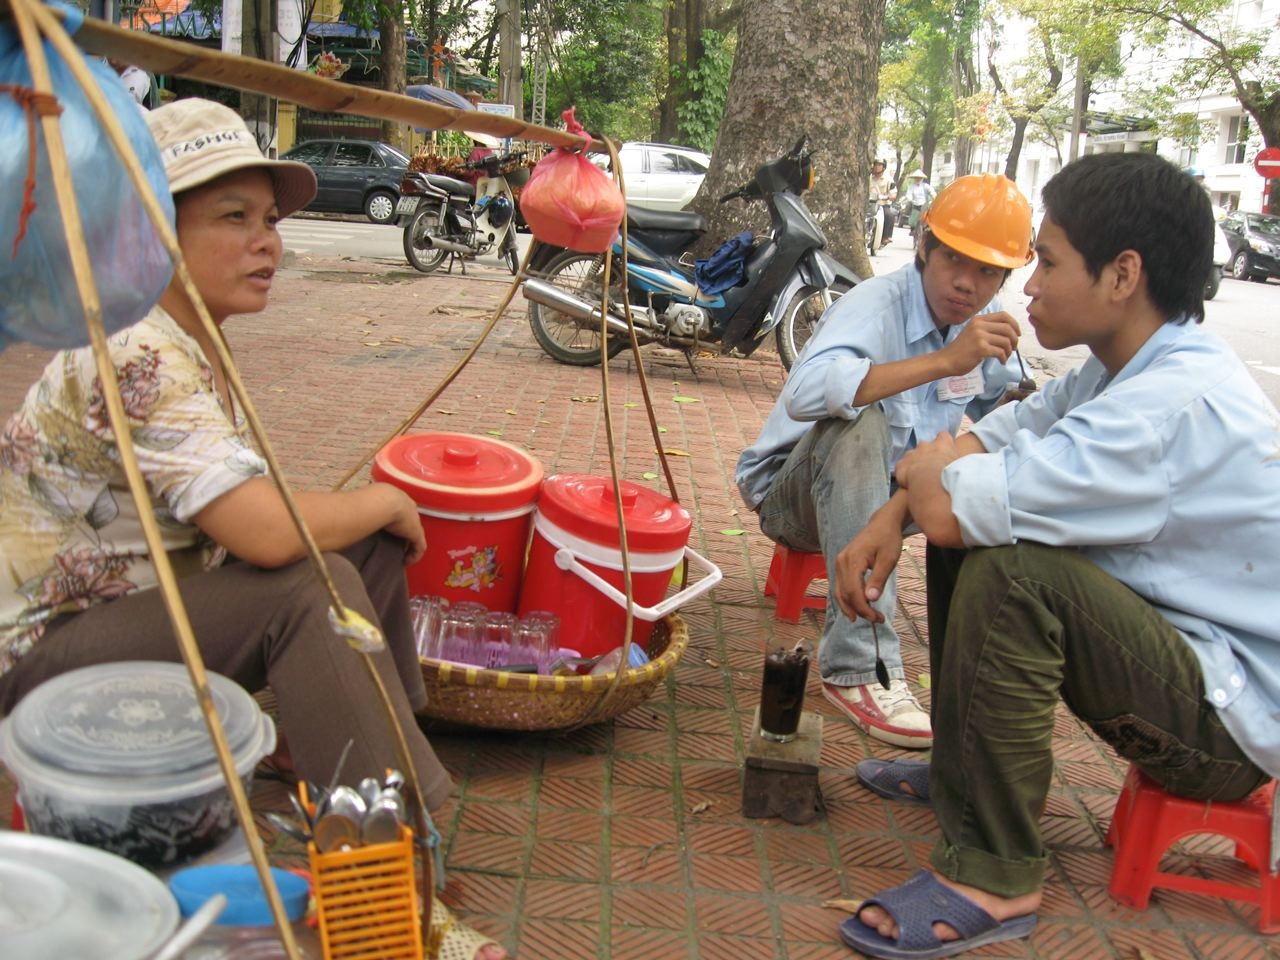 Workers pause for 'Thach', a popular Vietnamese iced drink that has doubled in price.